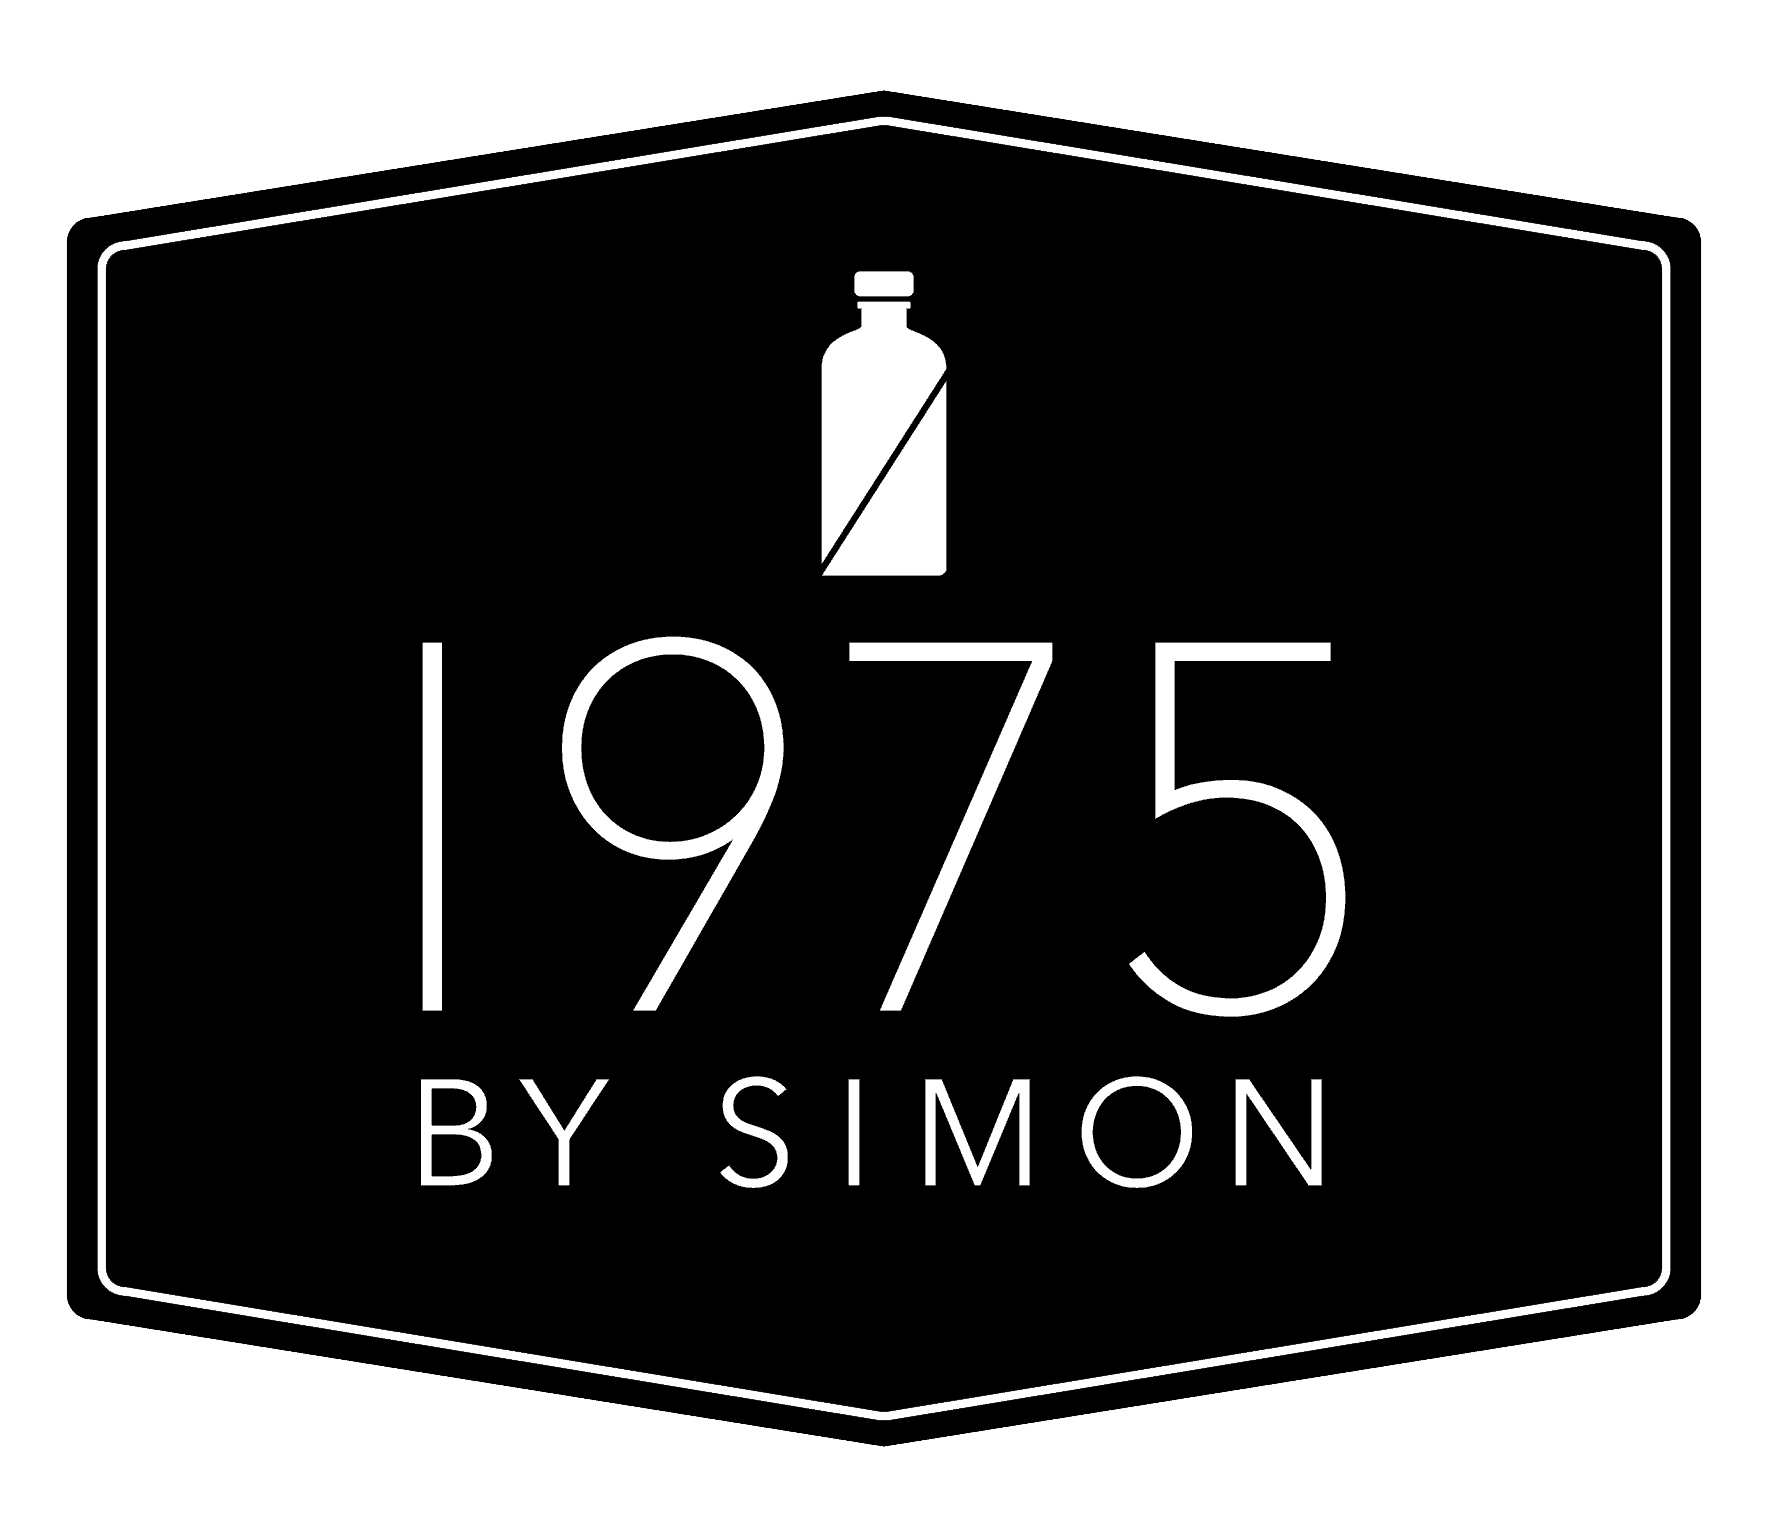 1975 by Simon